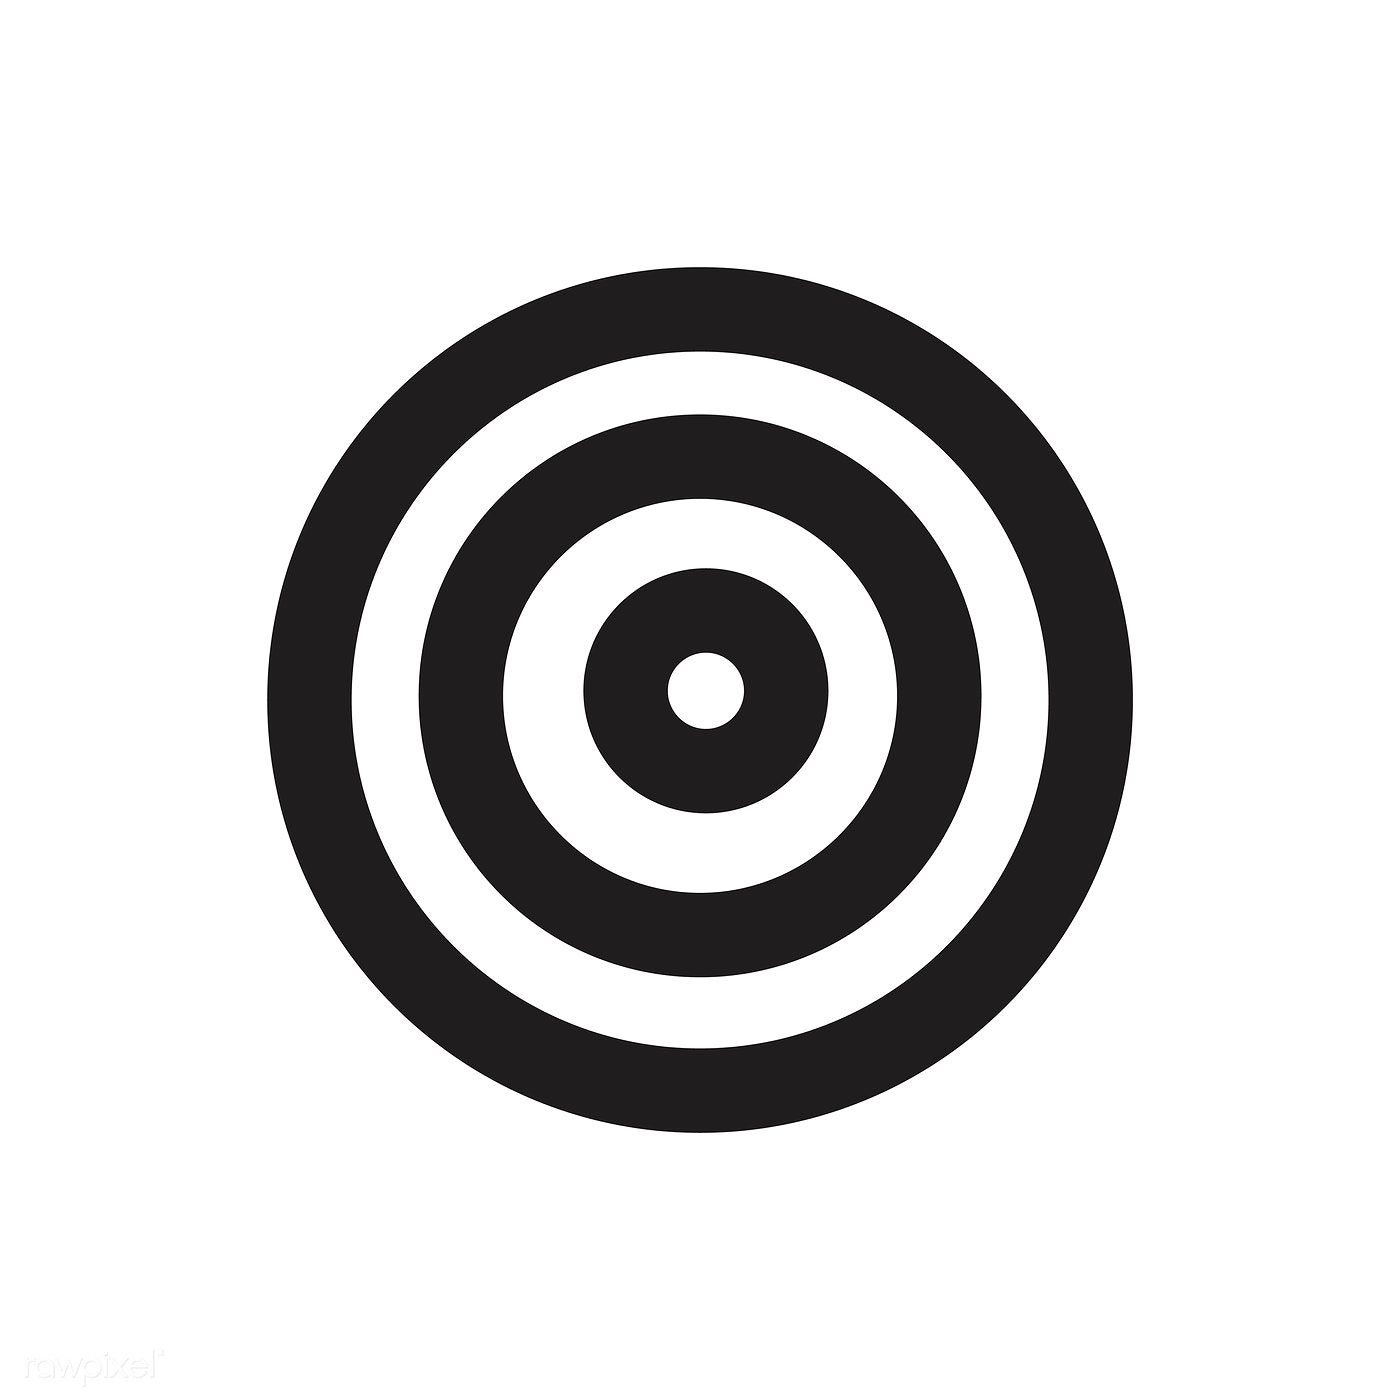 Isolated Target Icon On White Background Free Image By Rawpixel Com Manotang White Background Vector Free Icon Free download 50 best quality target icon png at getdrawings. isolated target icon on white